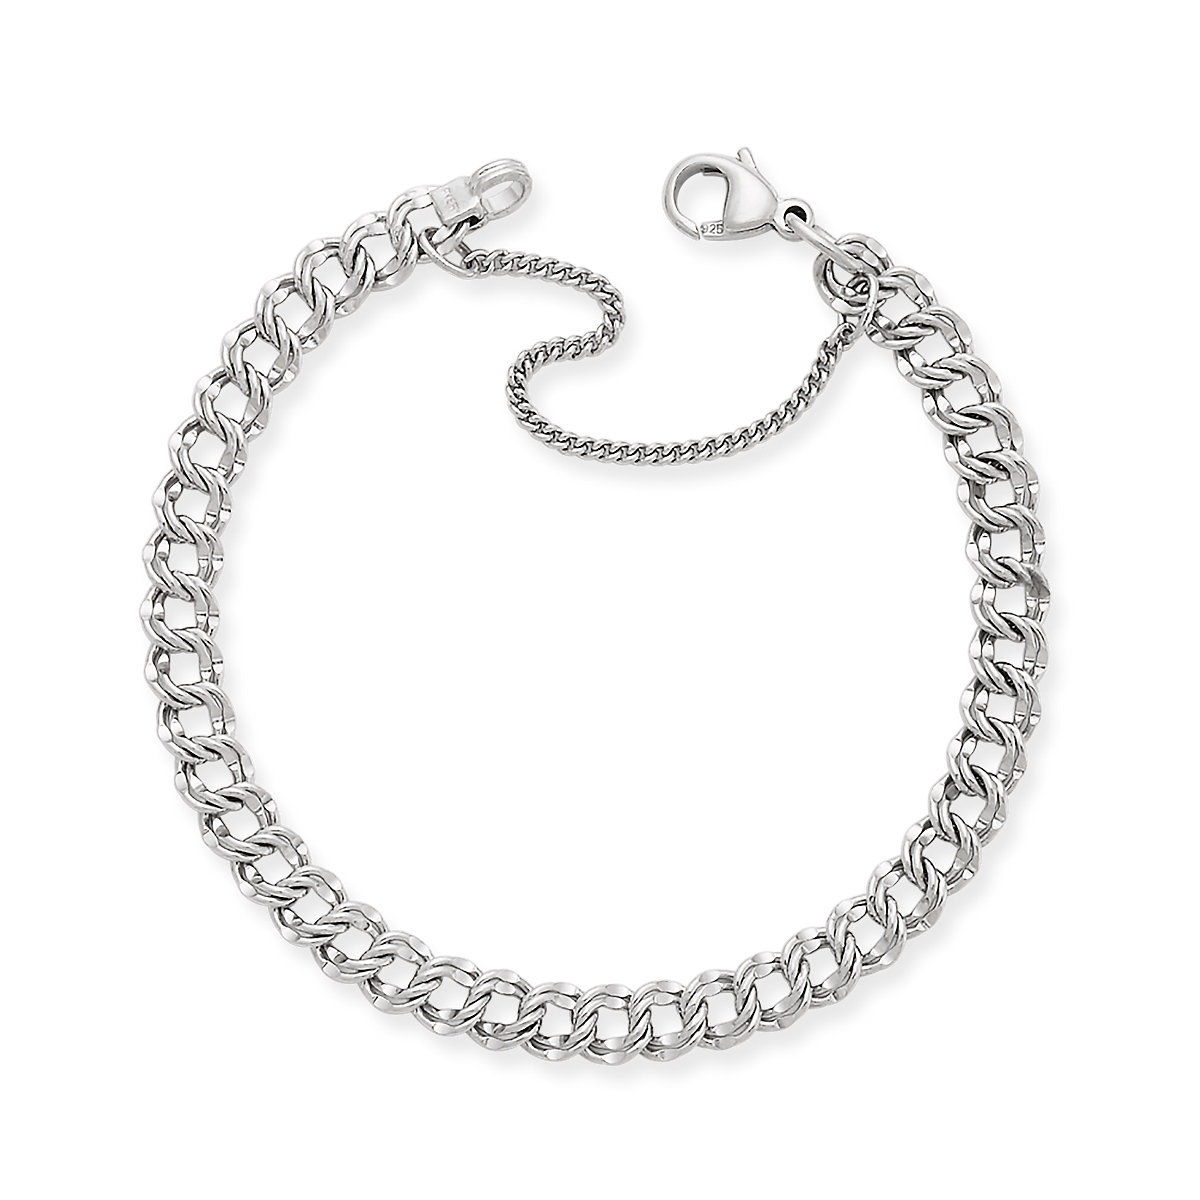 Light Double Curb Charm Bracelet